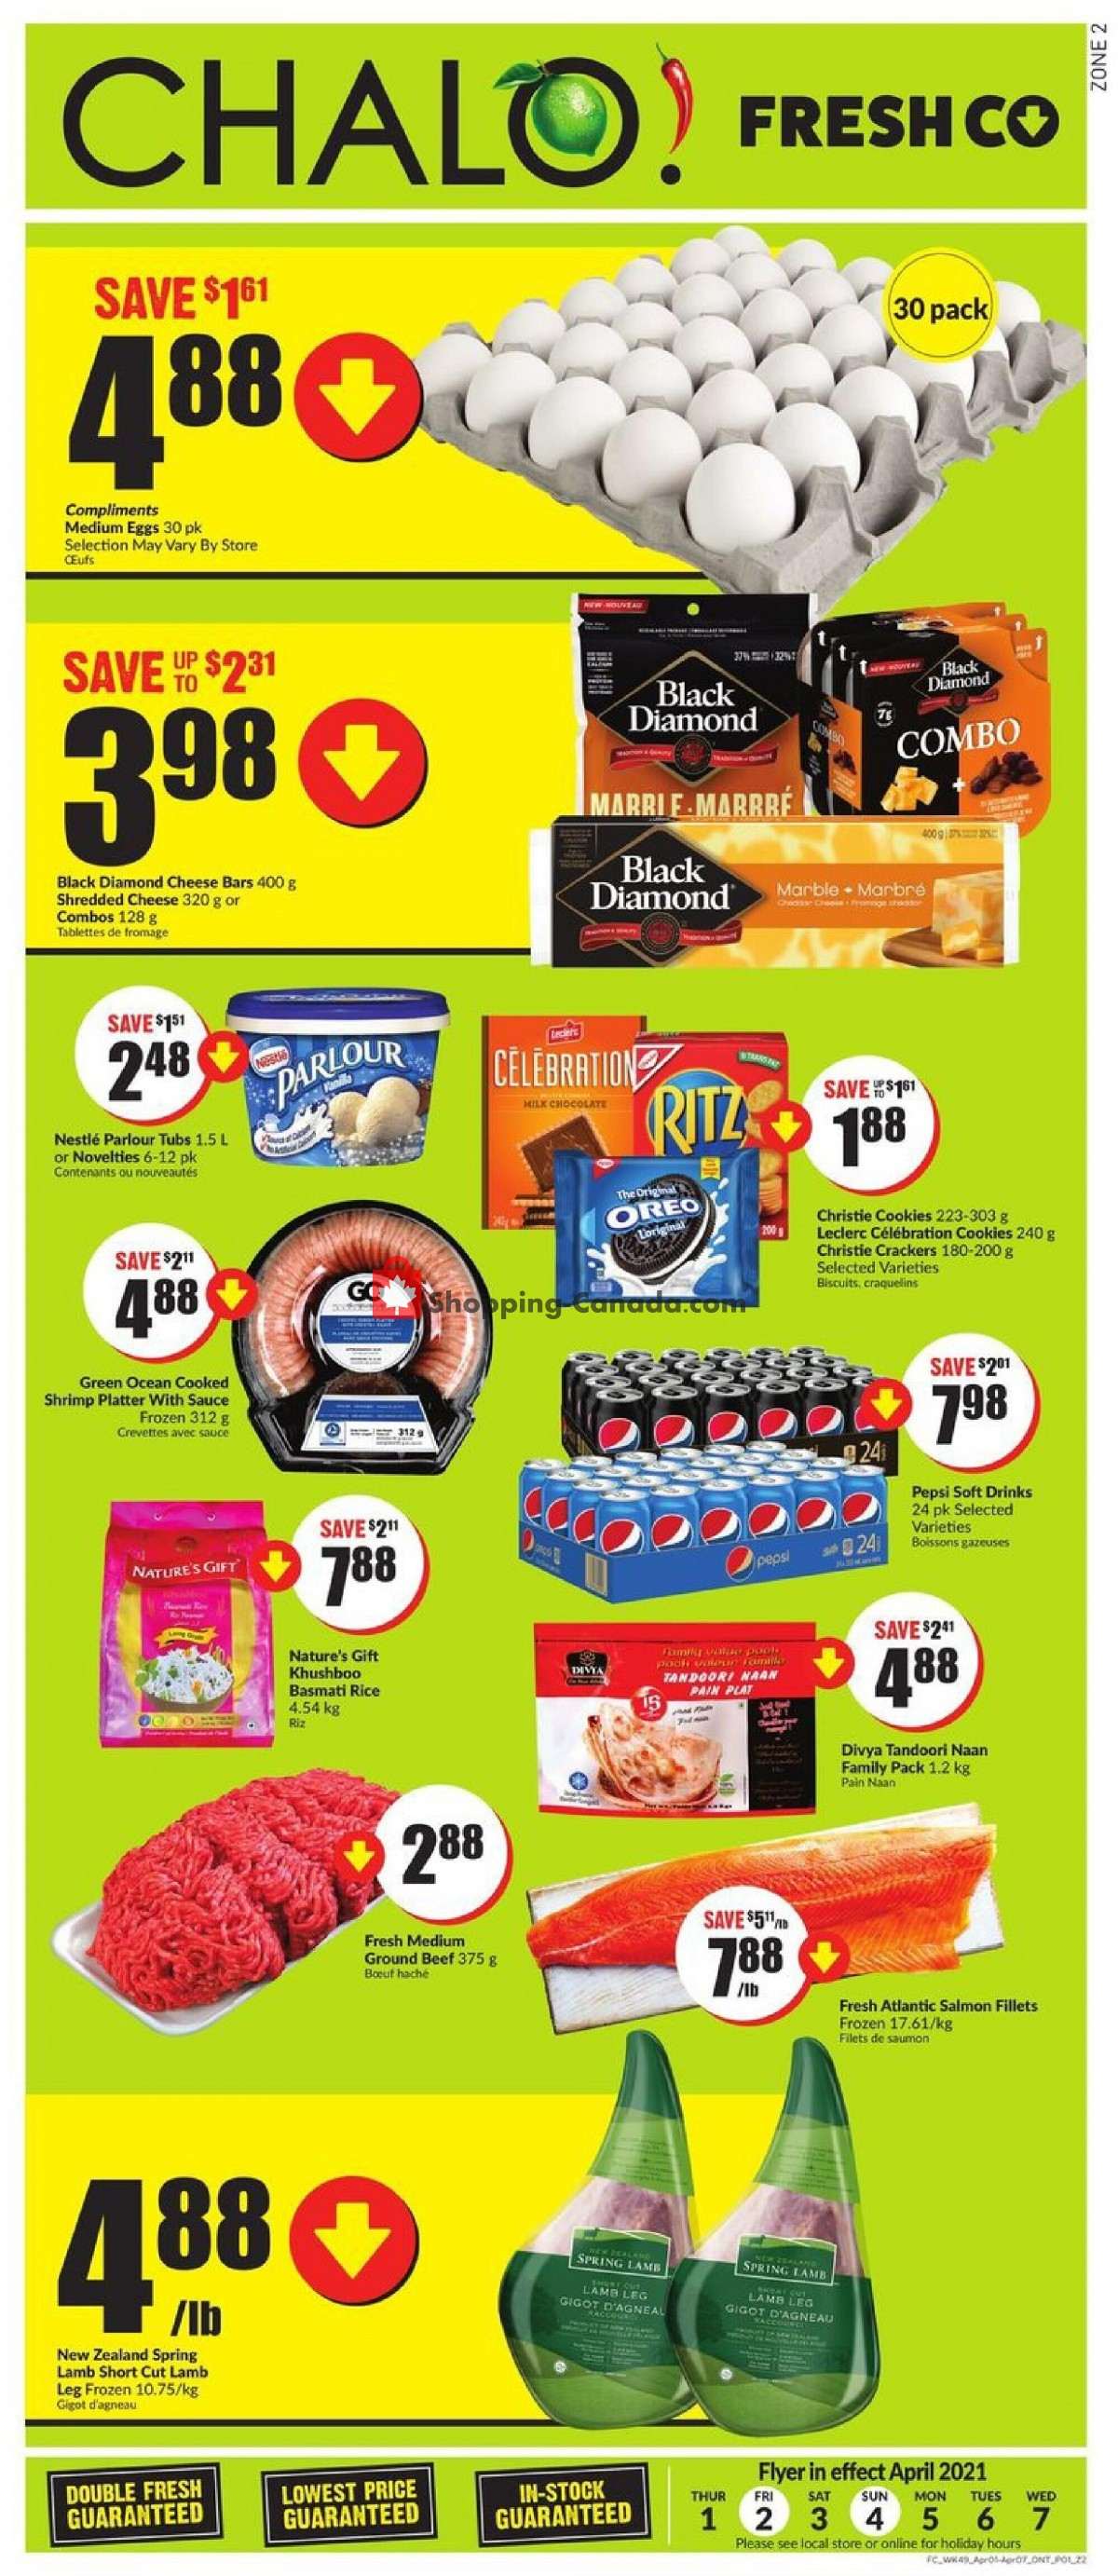 Flyer Chalo FreshCo Canada - from Thursday April 1, 2021 to Wednesday April 7, 2021